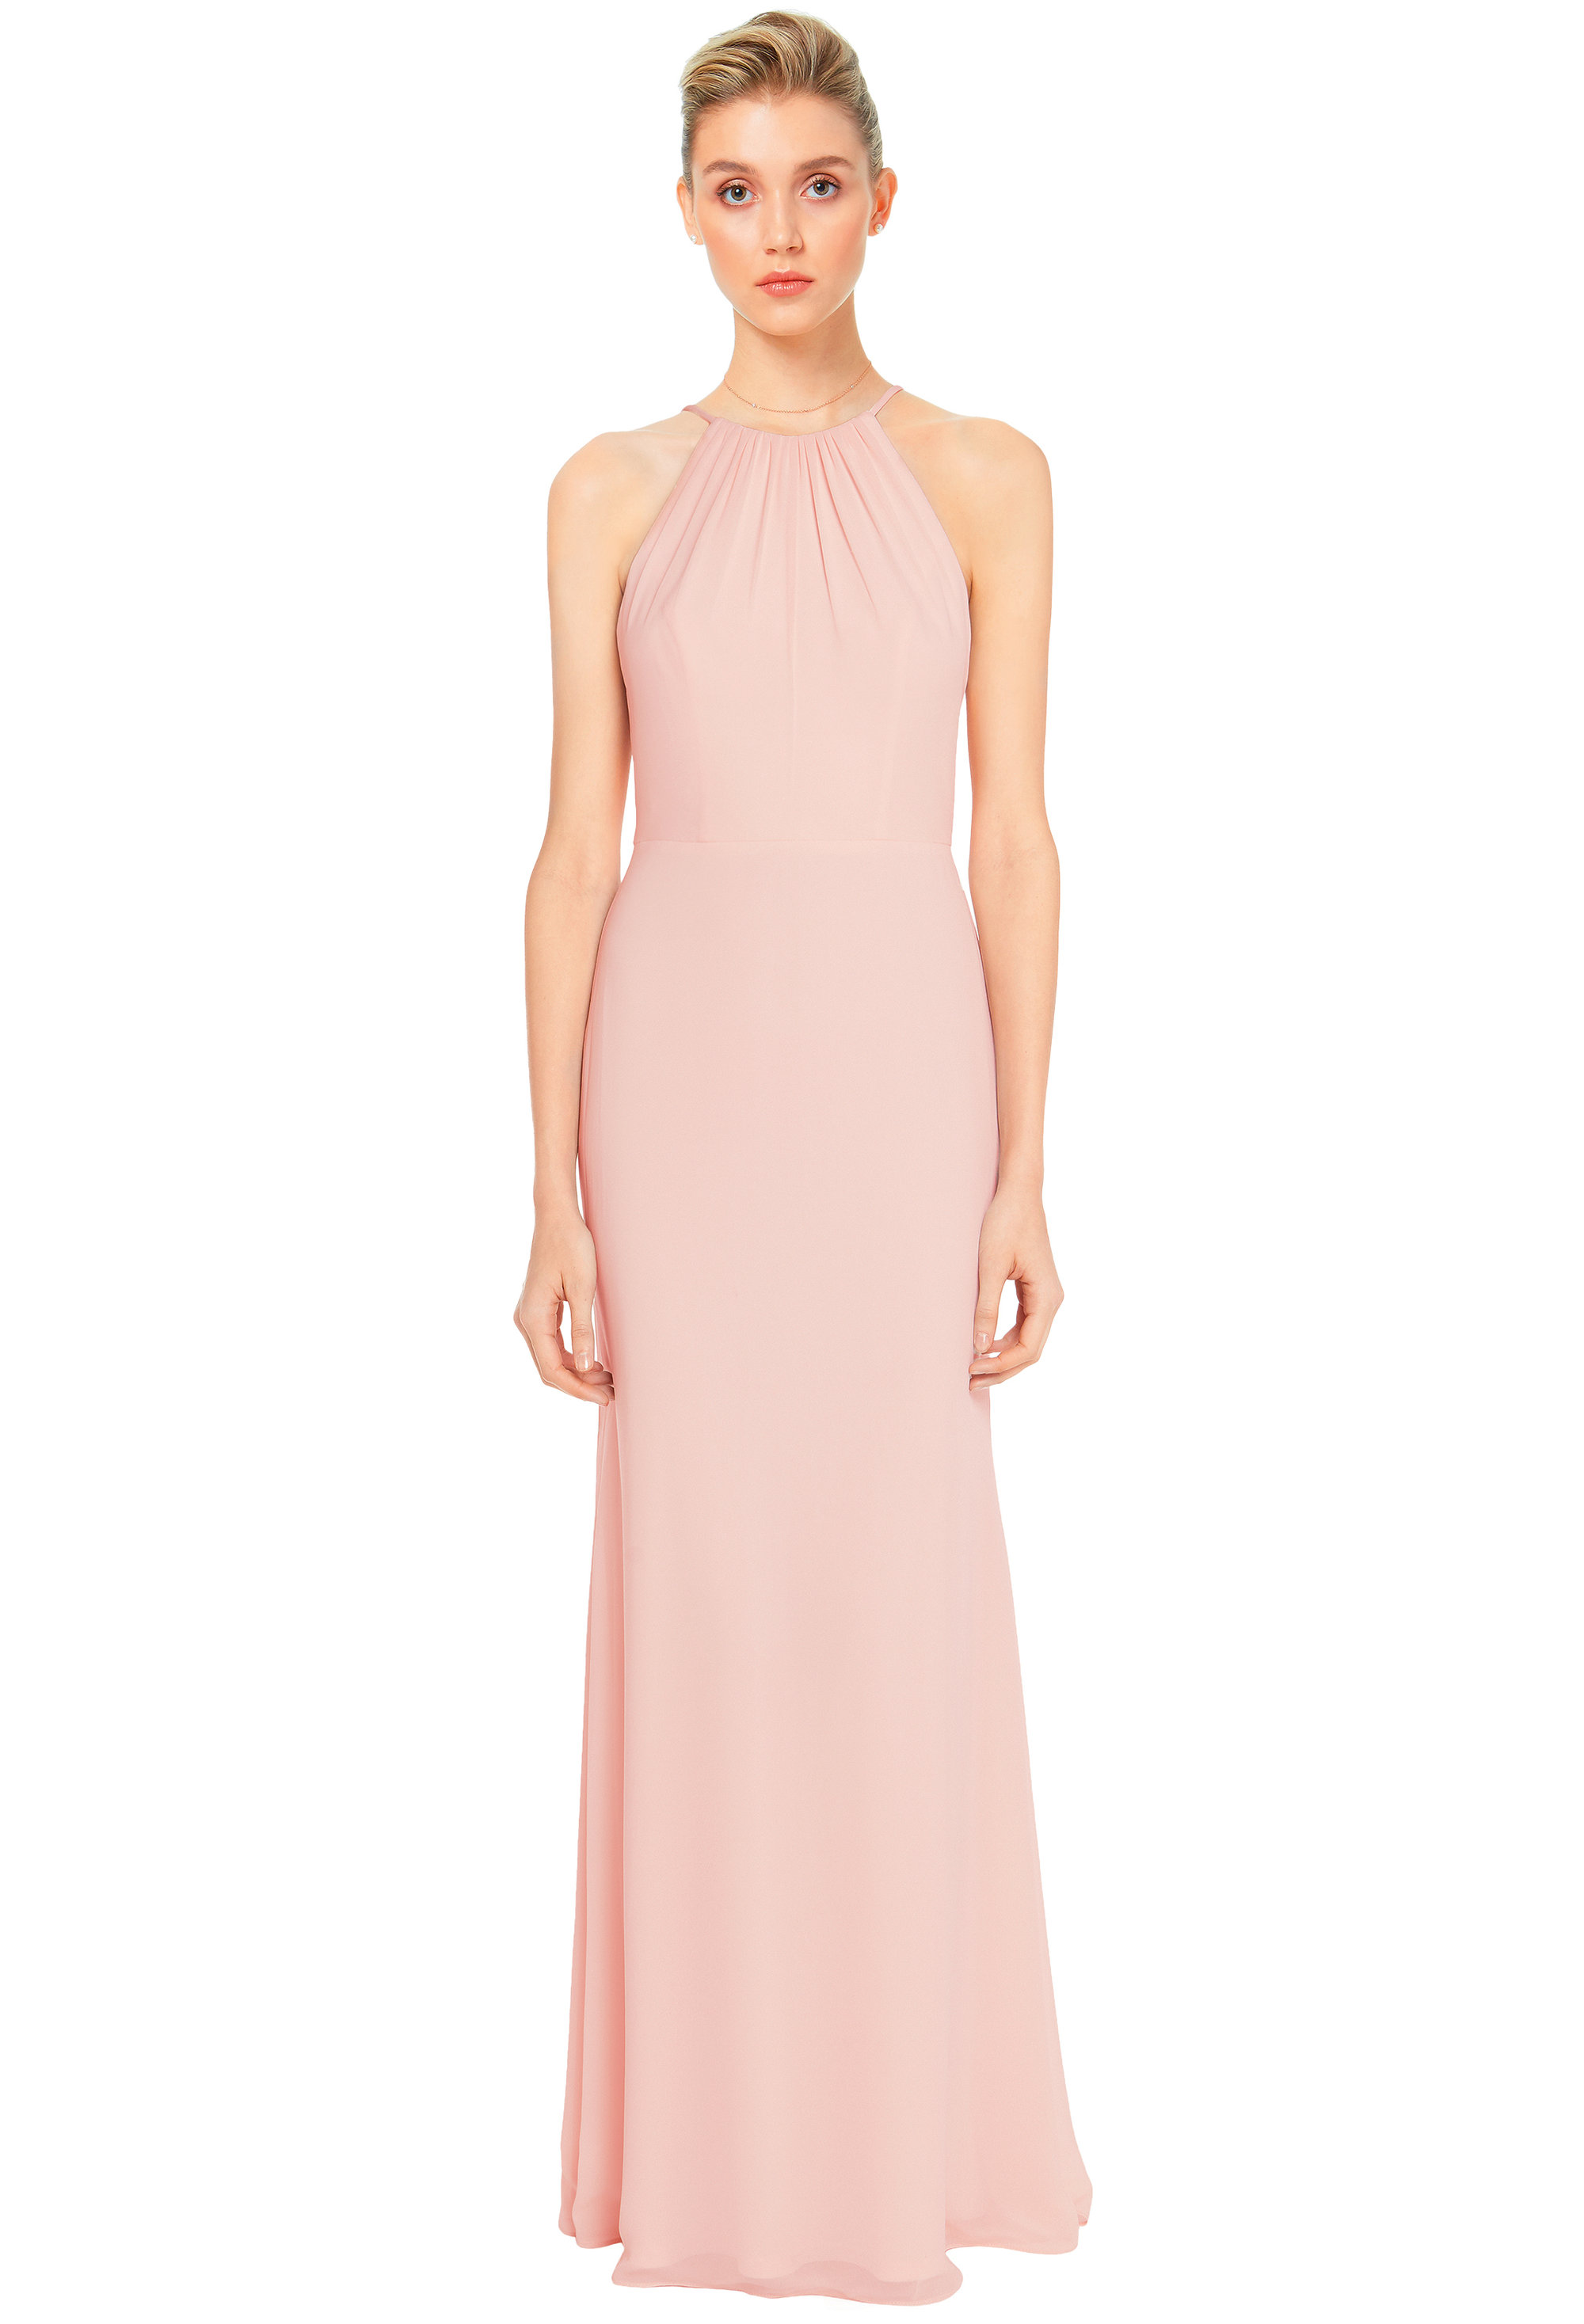 Bill Levkoff SHELL PINK Chiffon Spaghetti Strap A-line gown, $158.00 Front